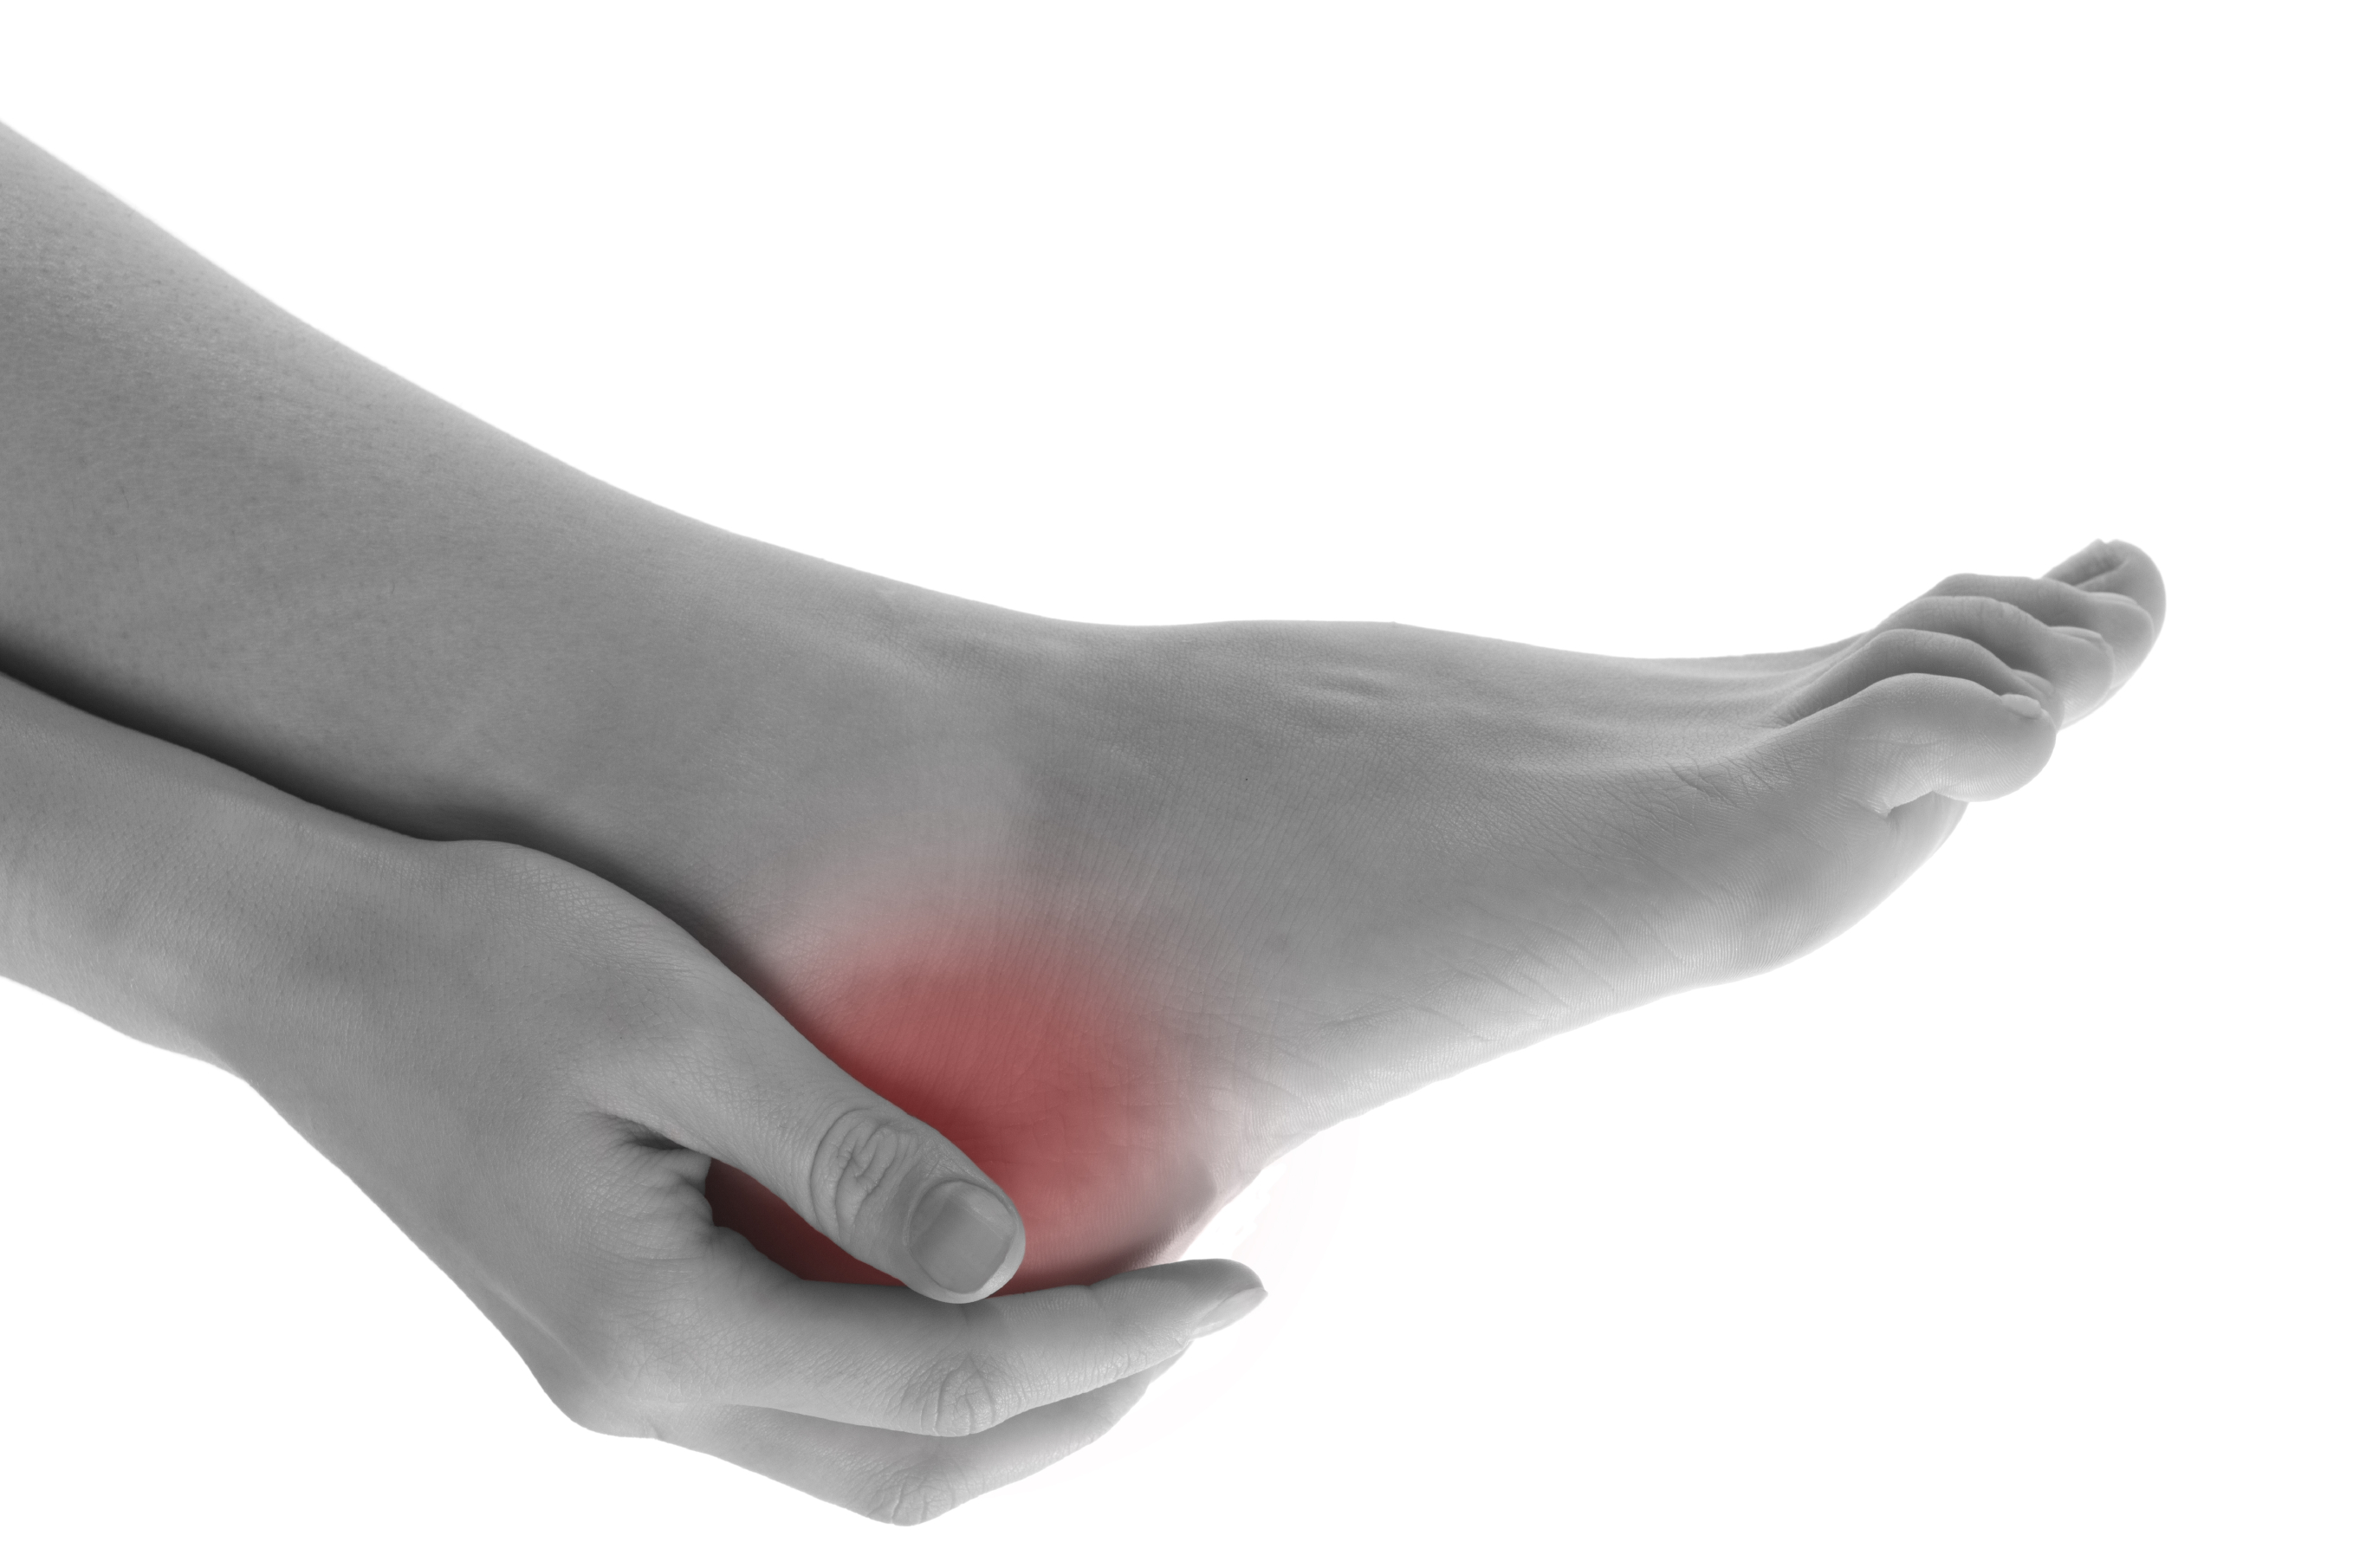 Finding the right heel pain treatment